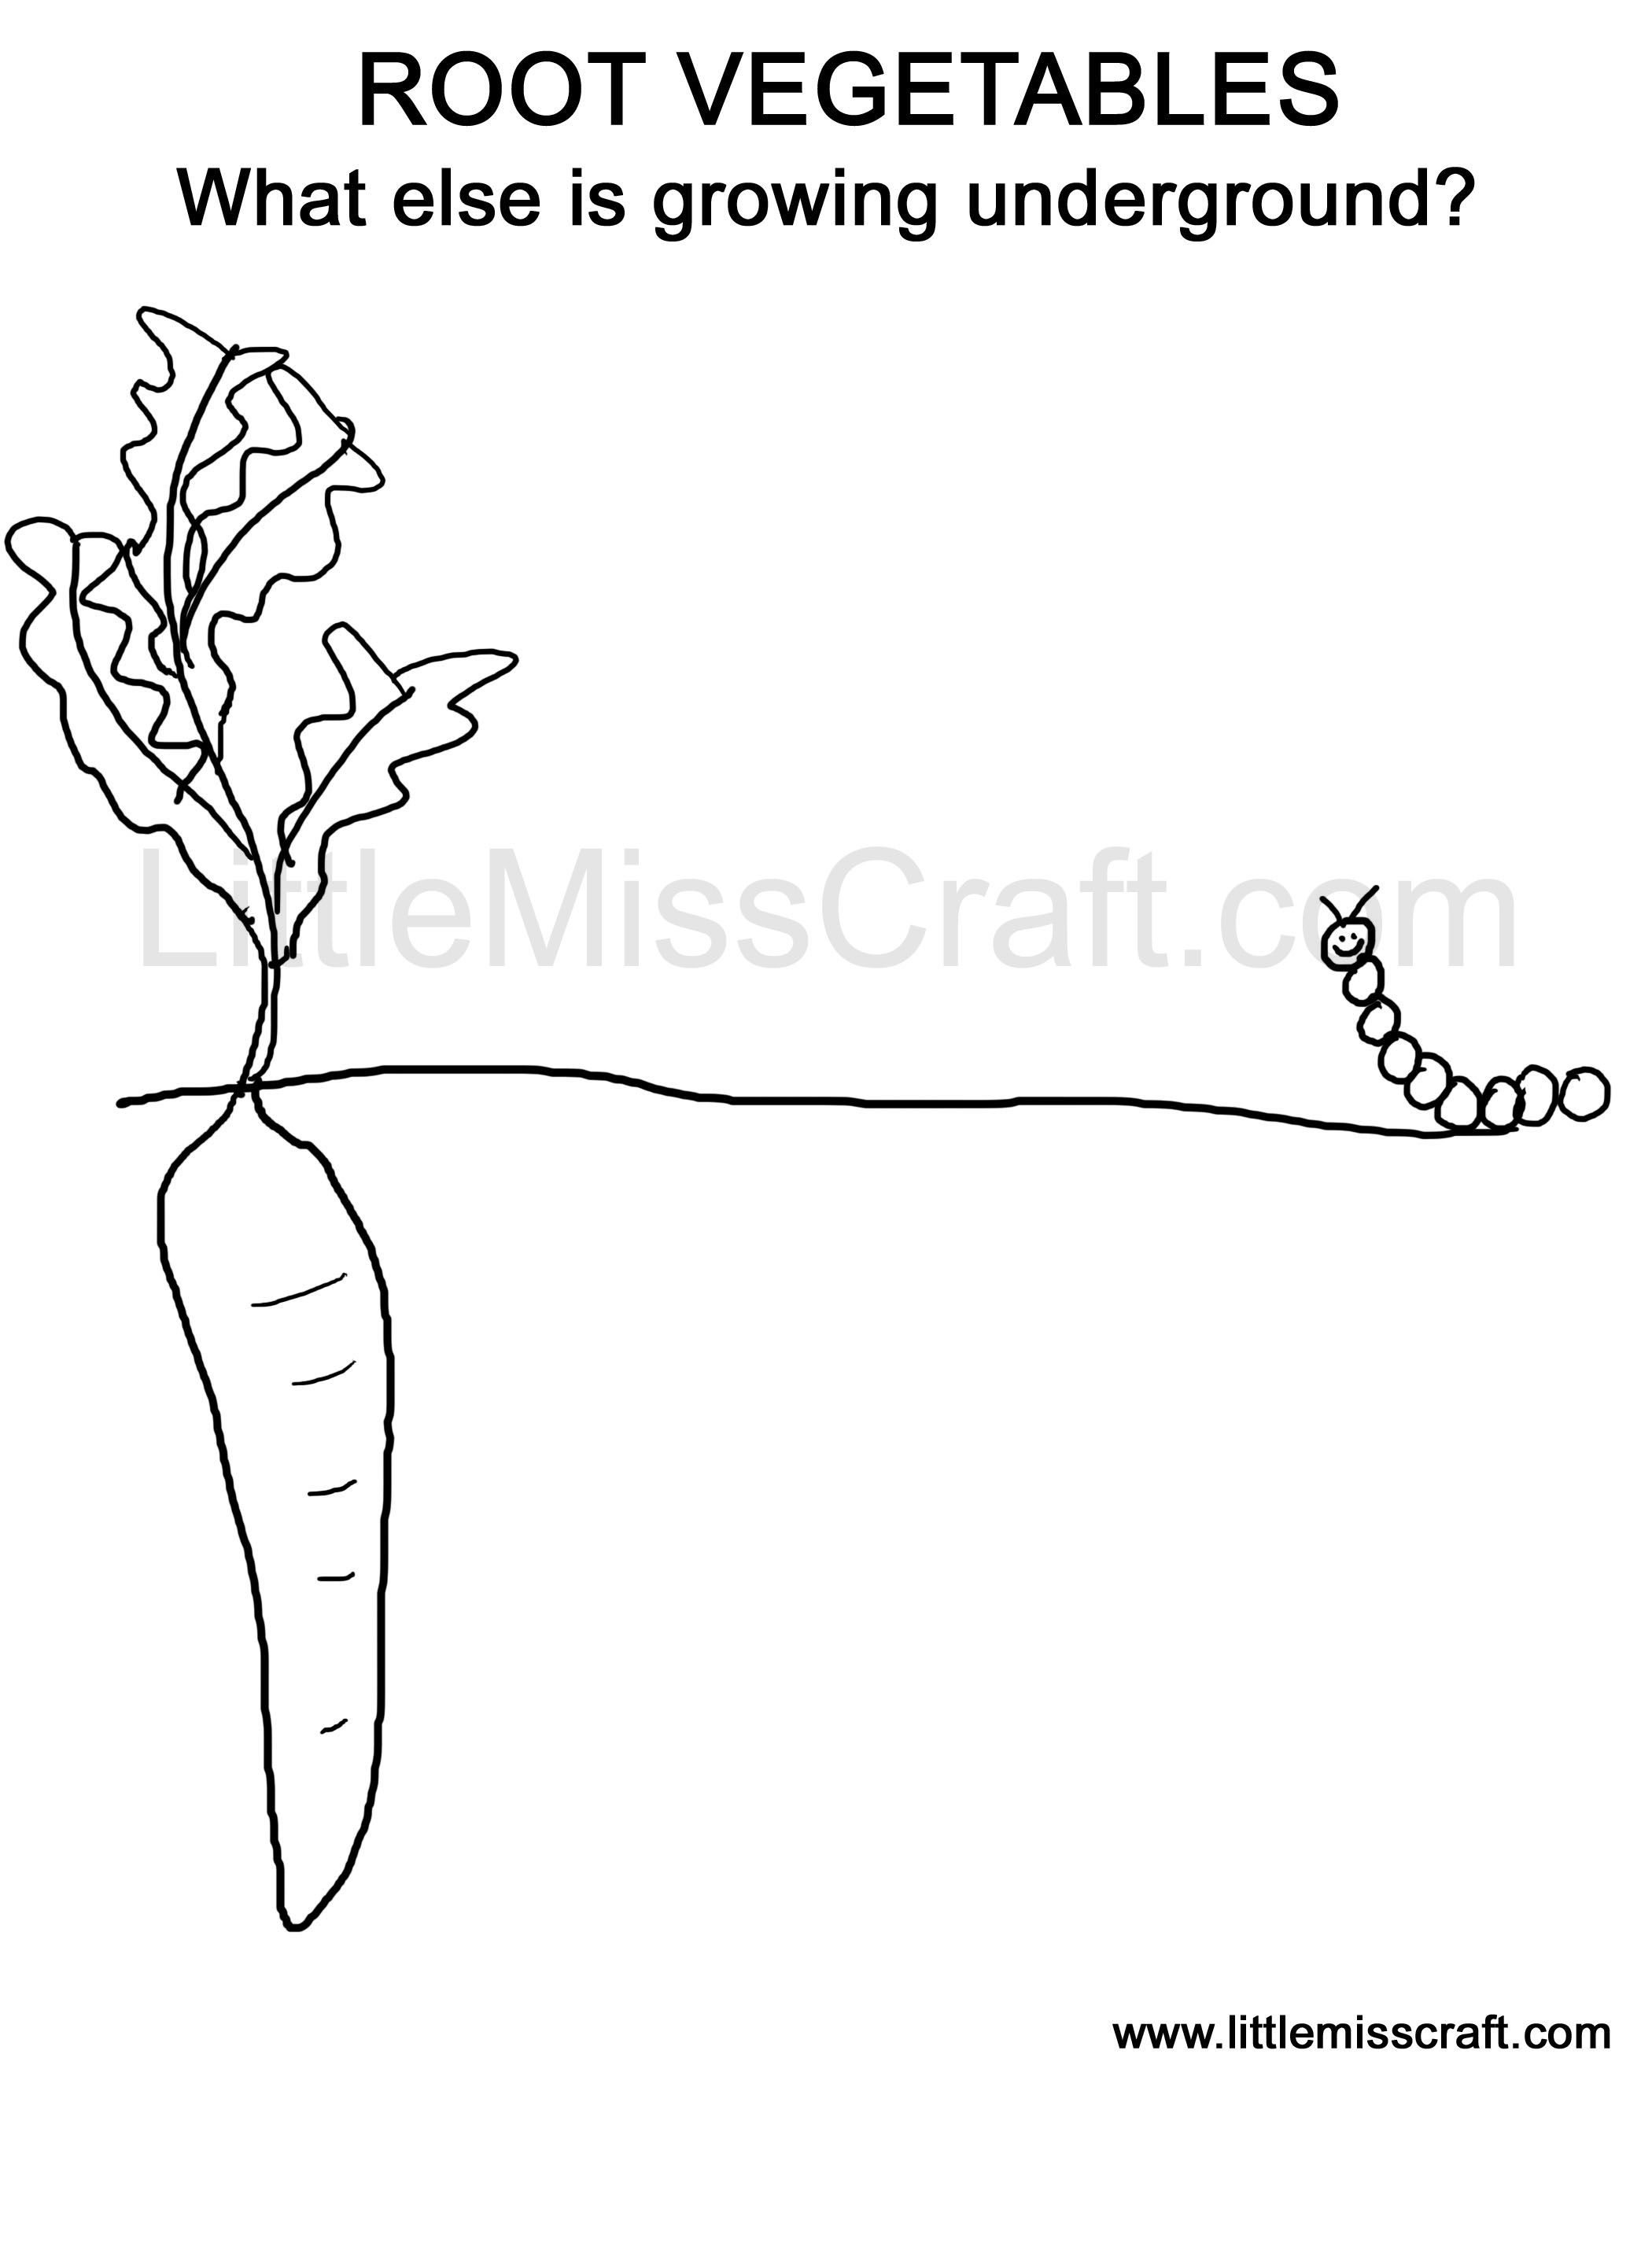 free printable doodle coloring page, root vegetables, growing ...